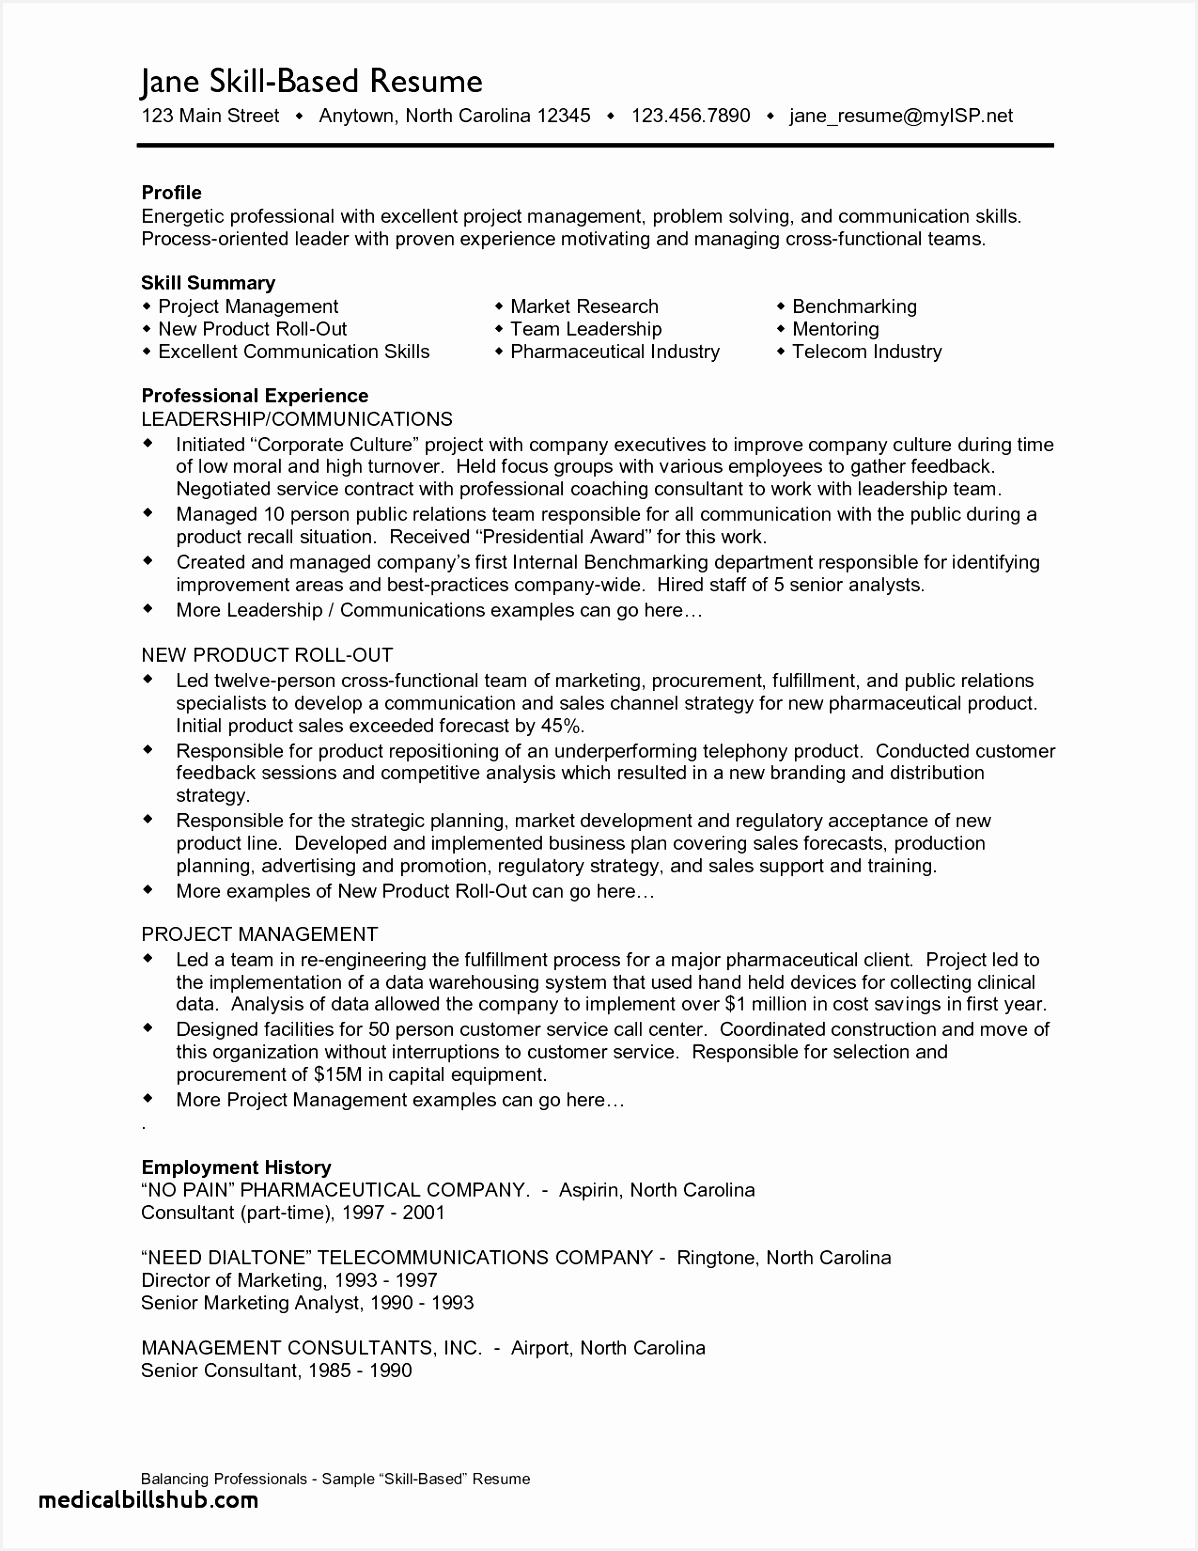 Sample Bank Management Resume R3kac Luxury Sample Resume for Banking Jobs Paragraphrewriter Of Sample Bank Management Resume Waafg Fresh Banking Skills for Resume Beautiful 25 New Property Manager Resume